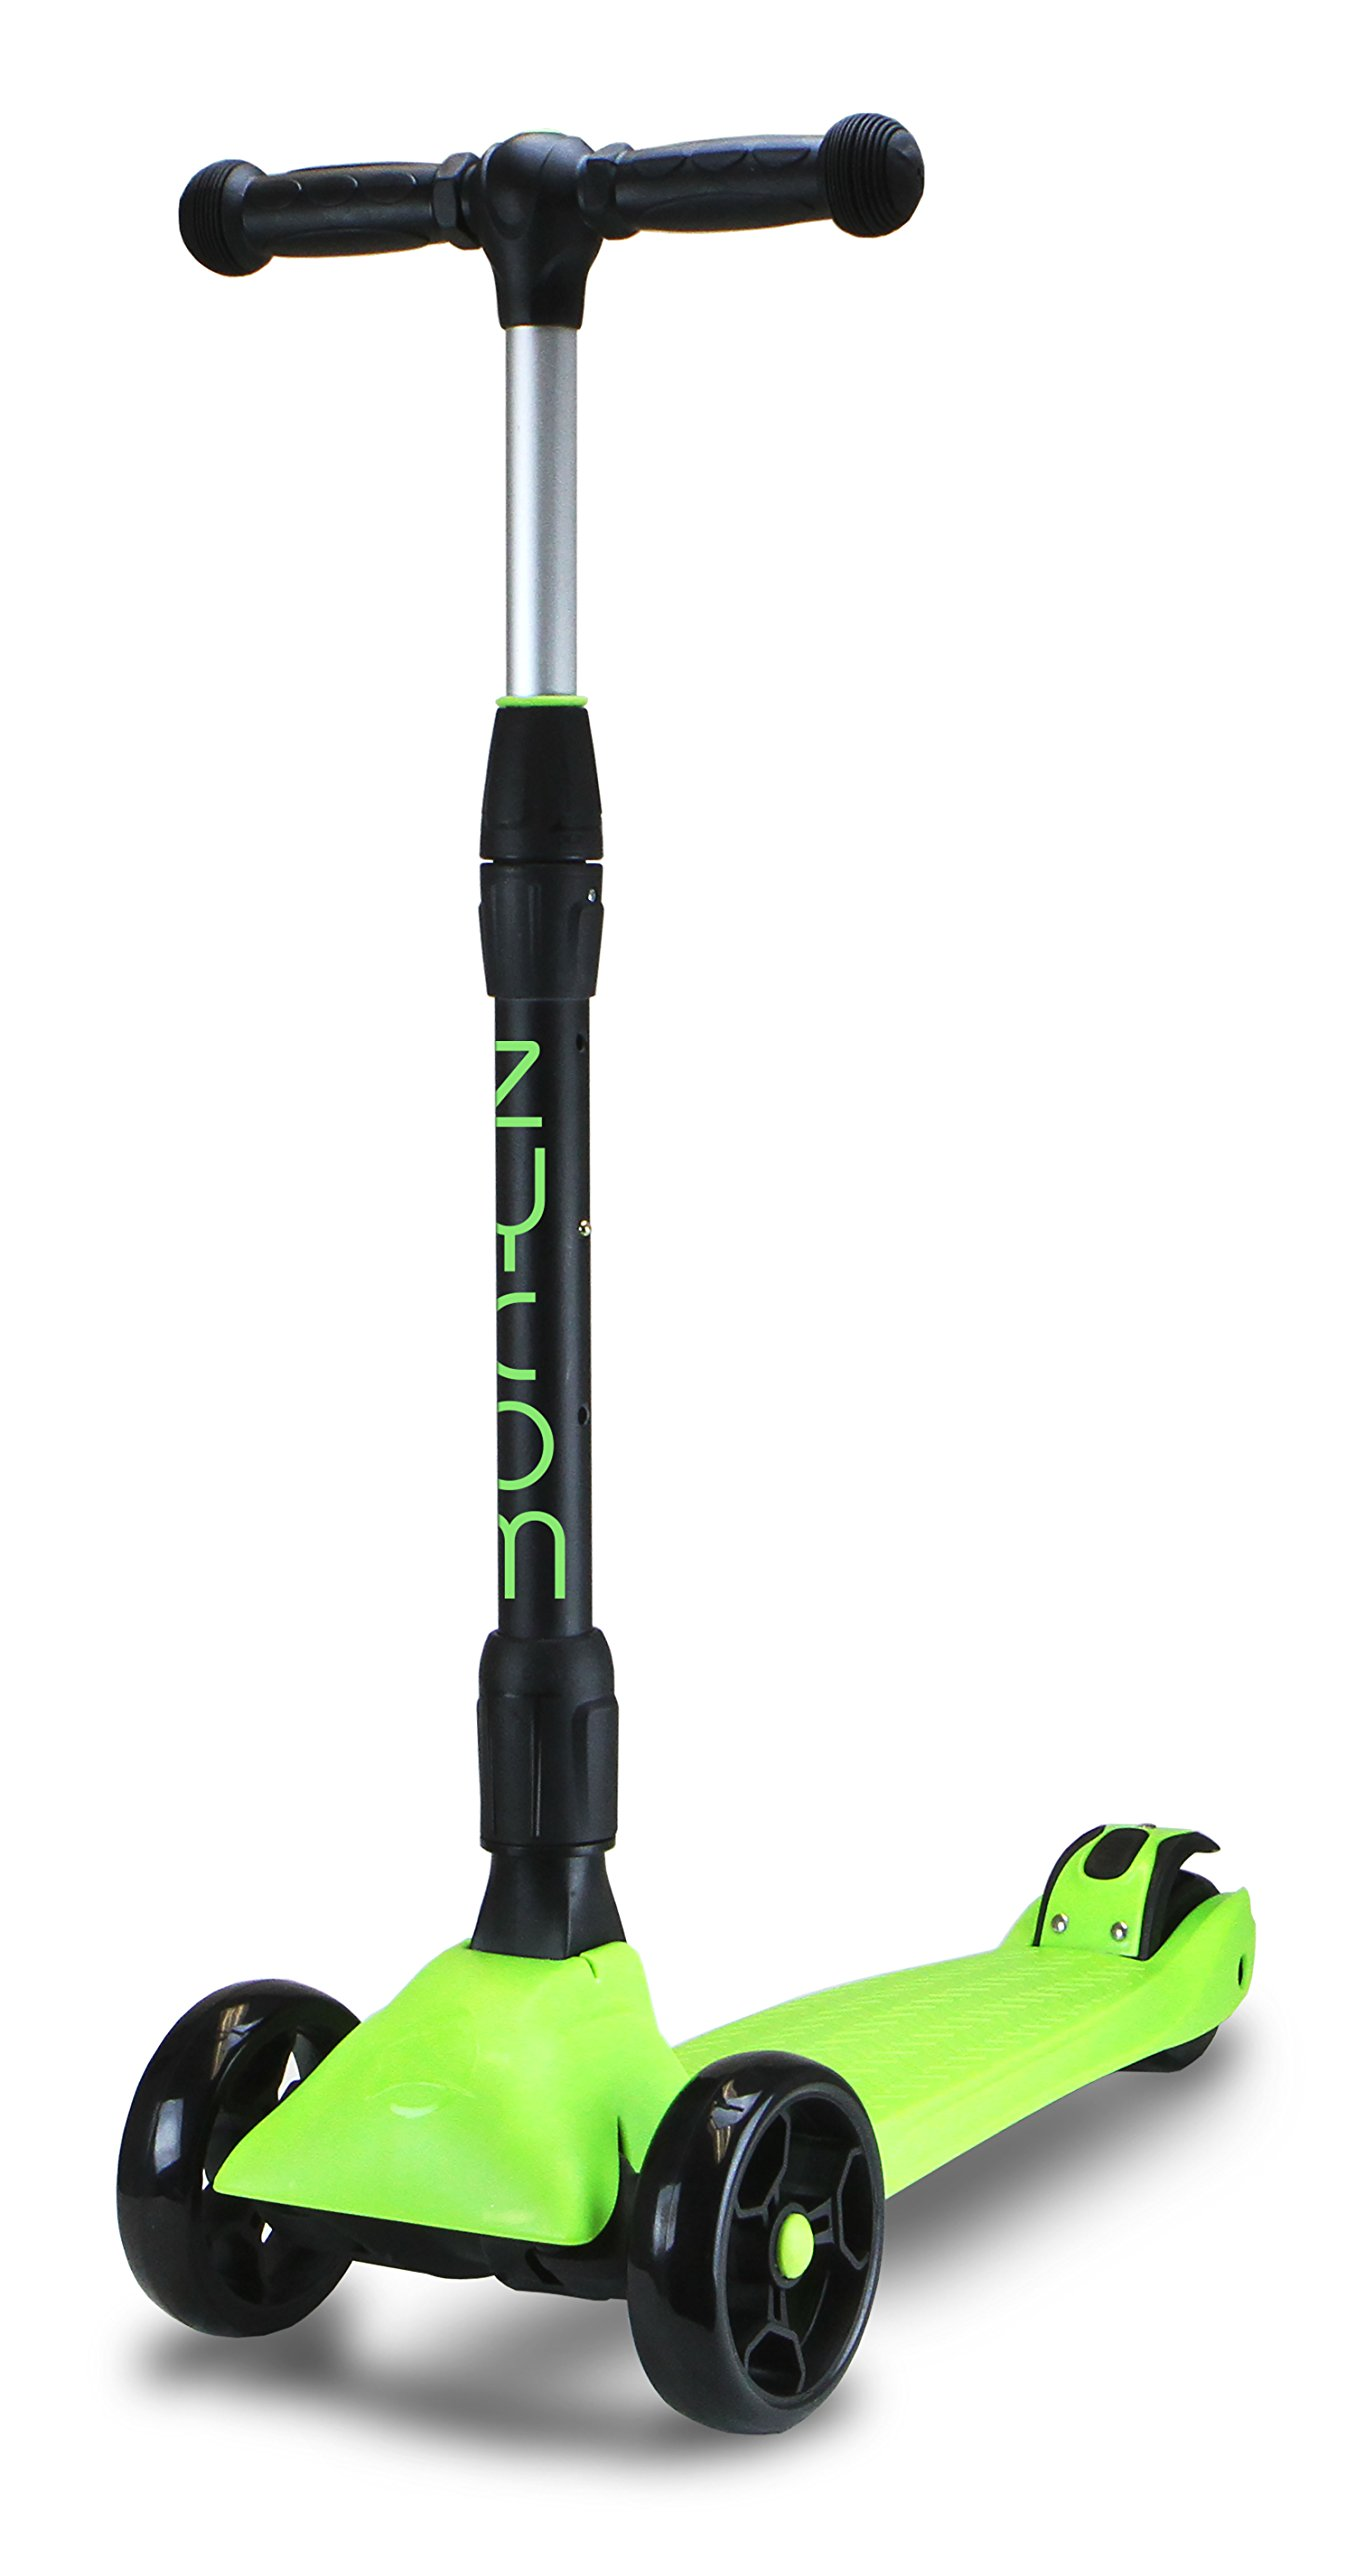 Zycom Zinger 3 Wheel Scooter, Black/Lime Green by Zycom